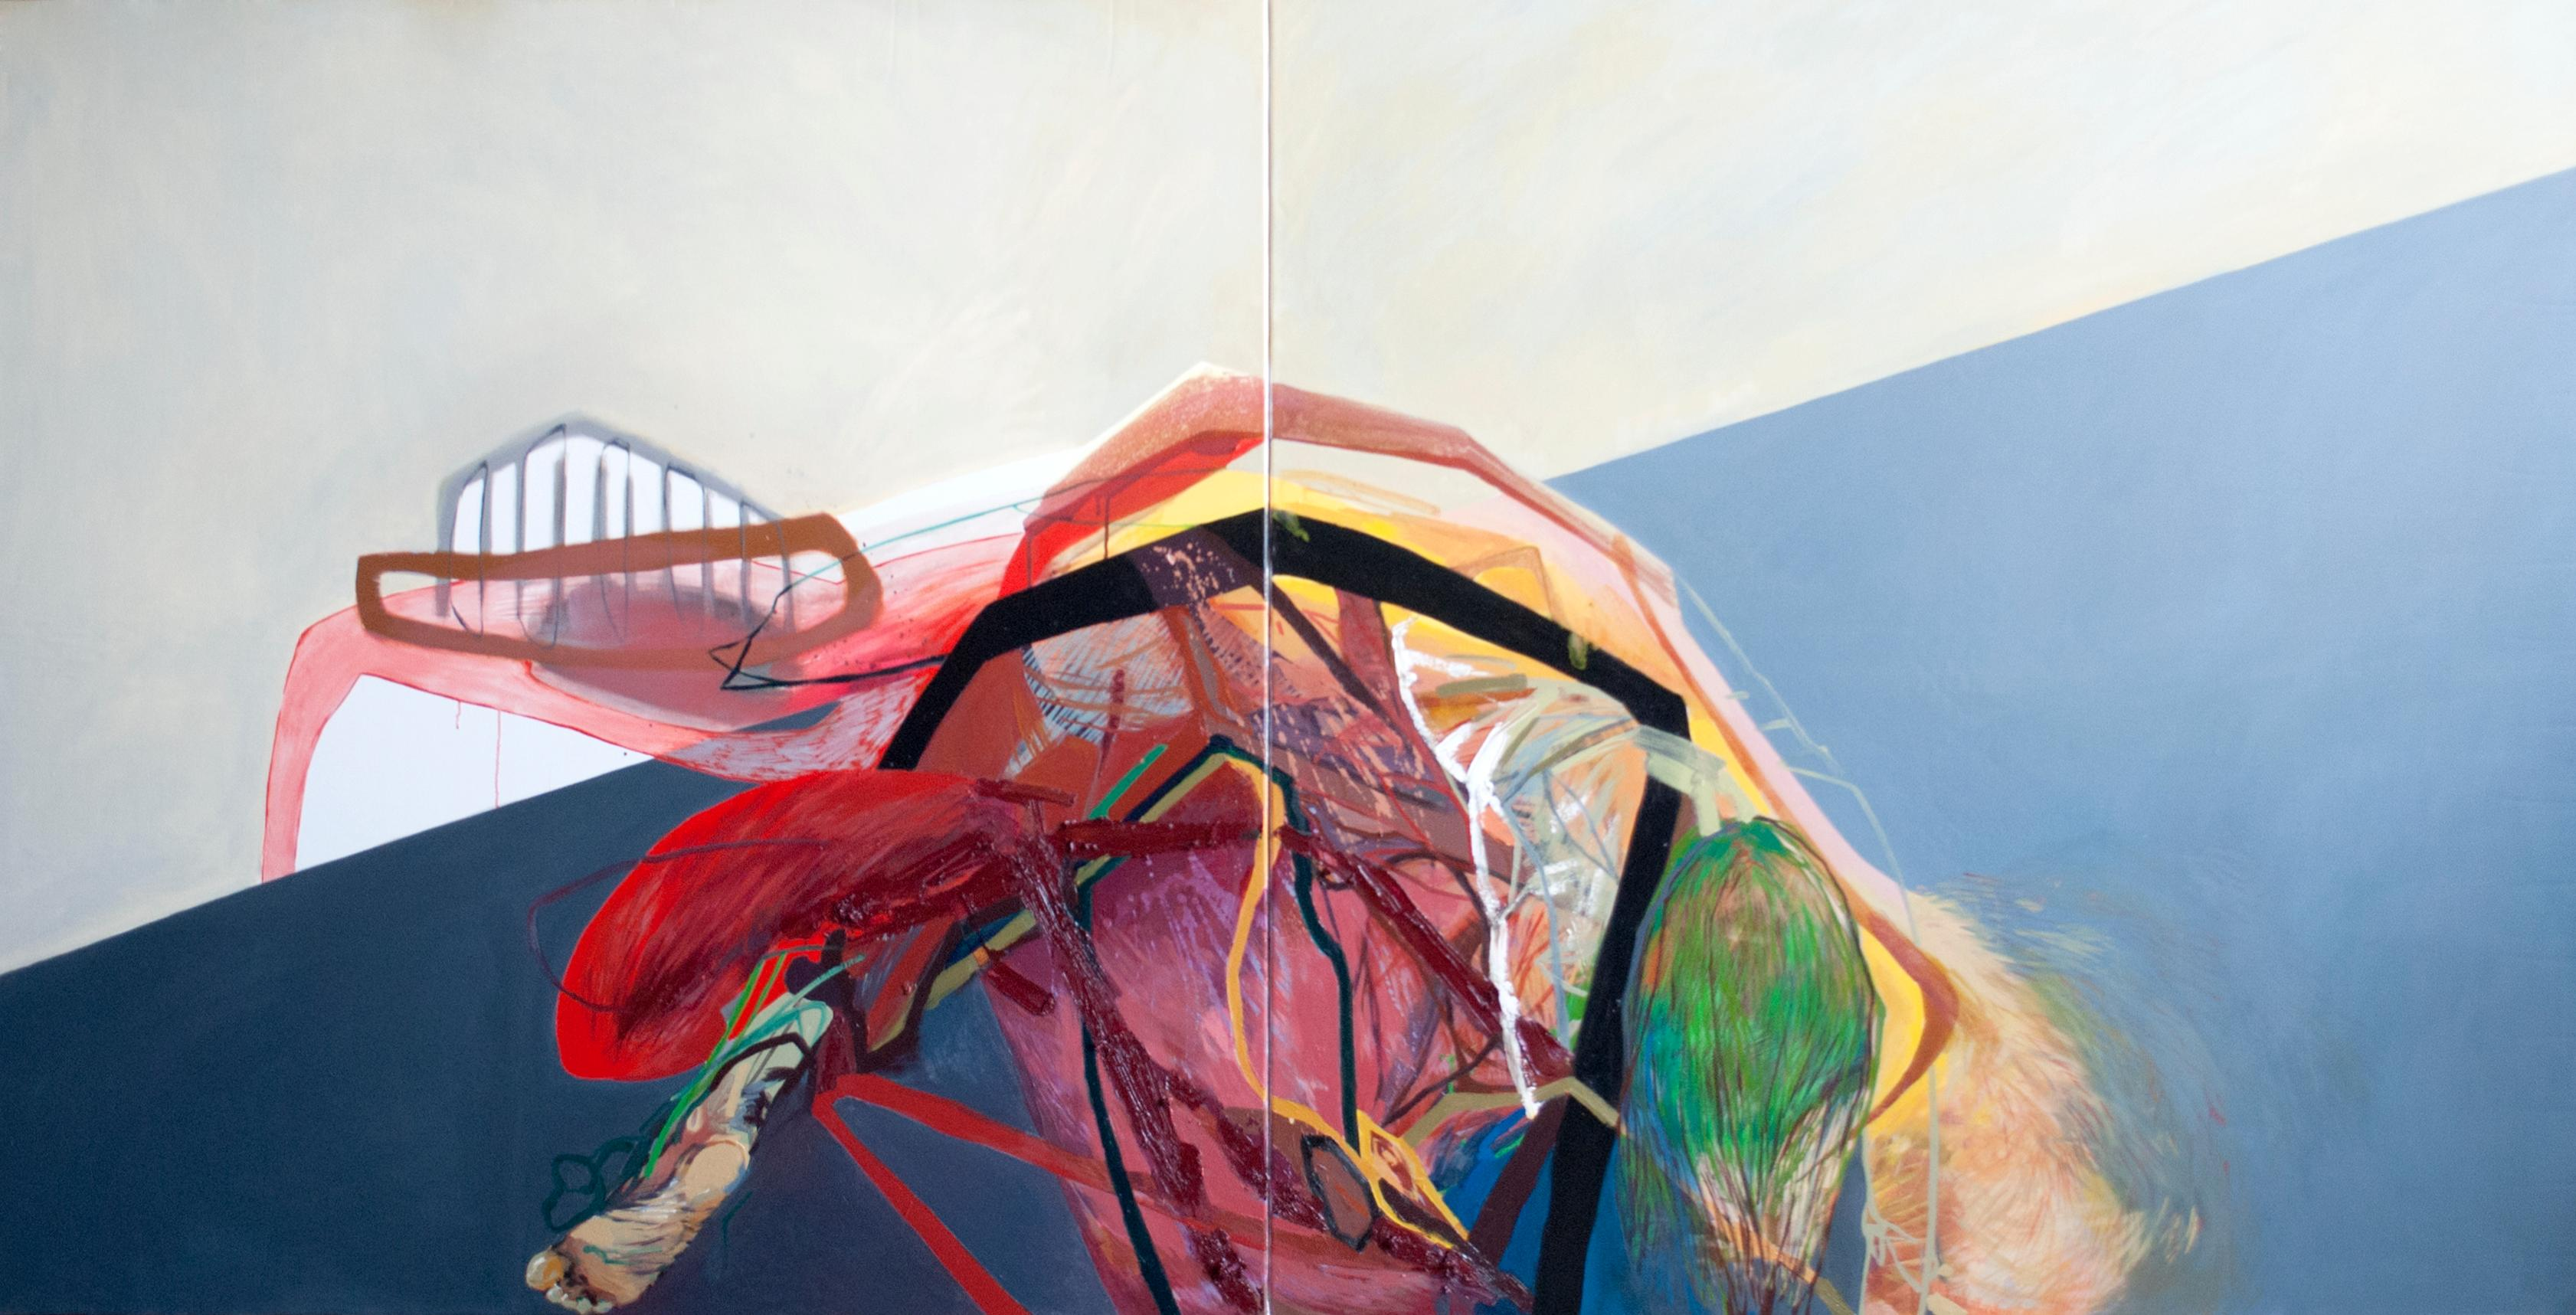 SERIES: MEAT&GEOMETRY -  Diptych: Meat and Geometry X  - (Large Format Painting)